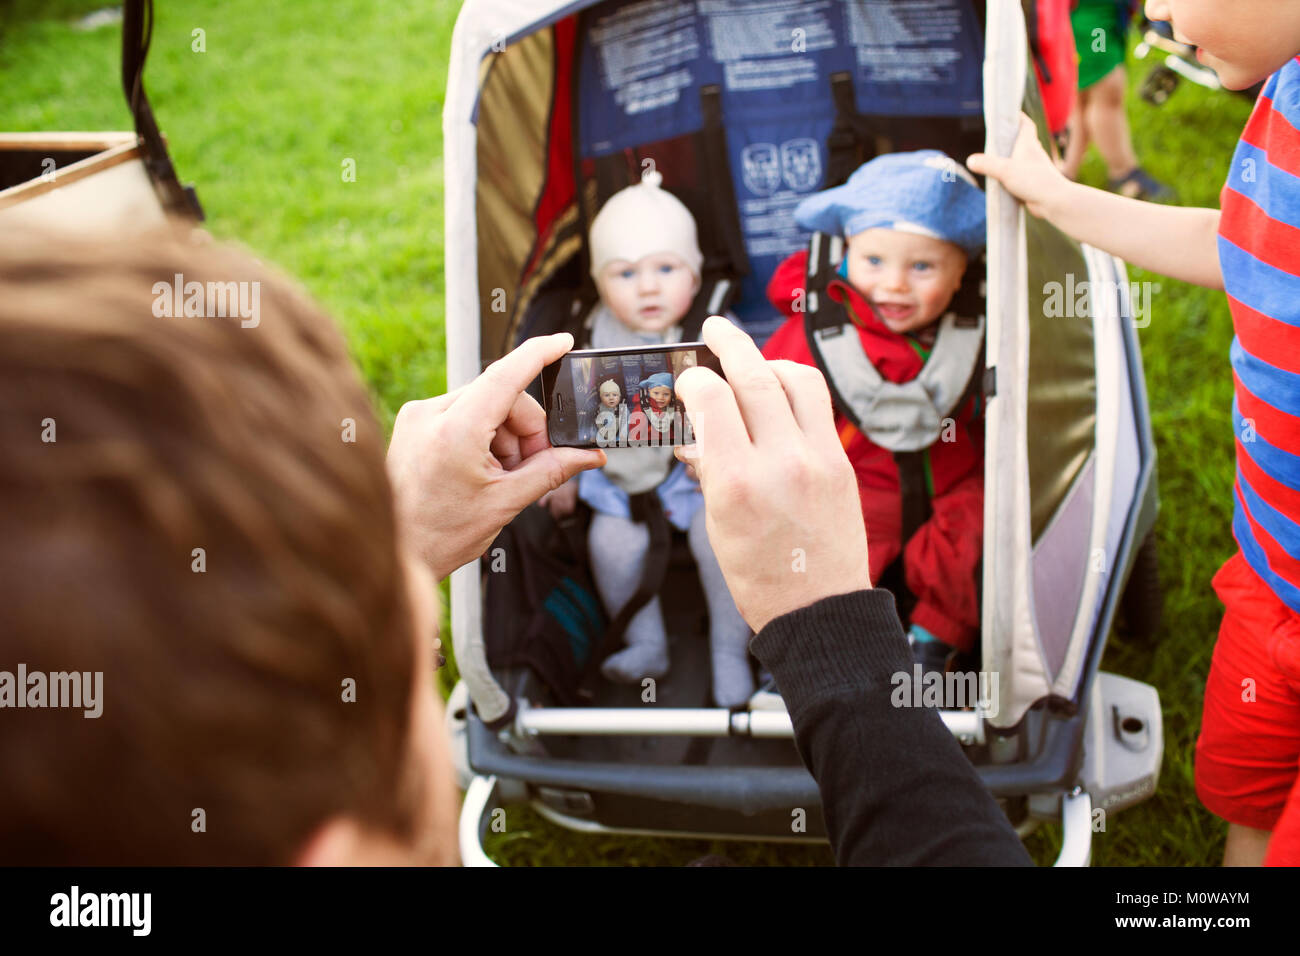 Father taking photograph of babies - Stock Image